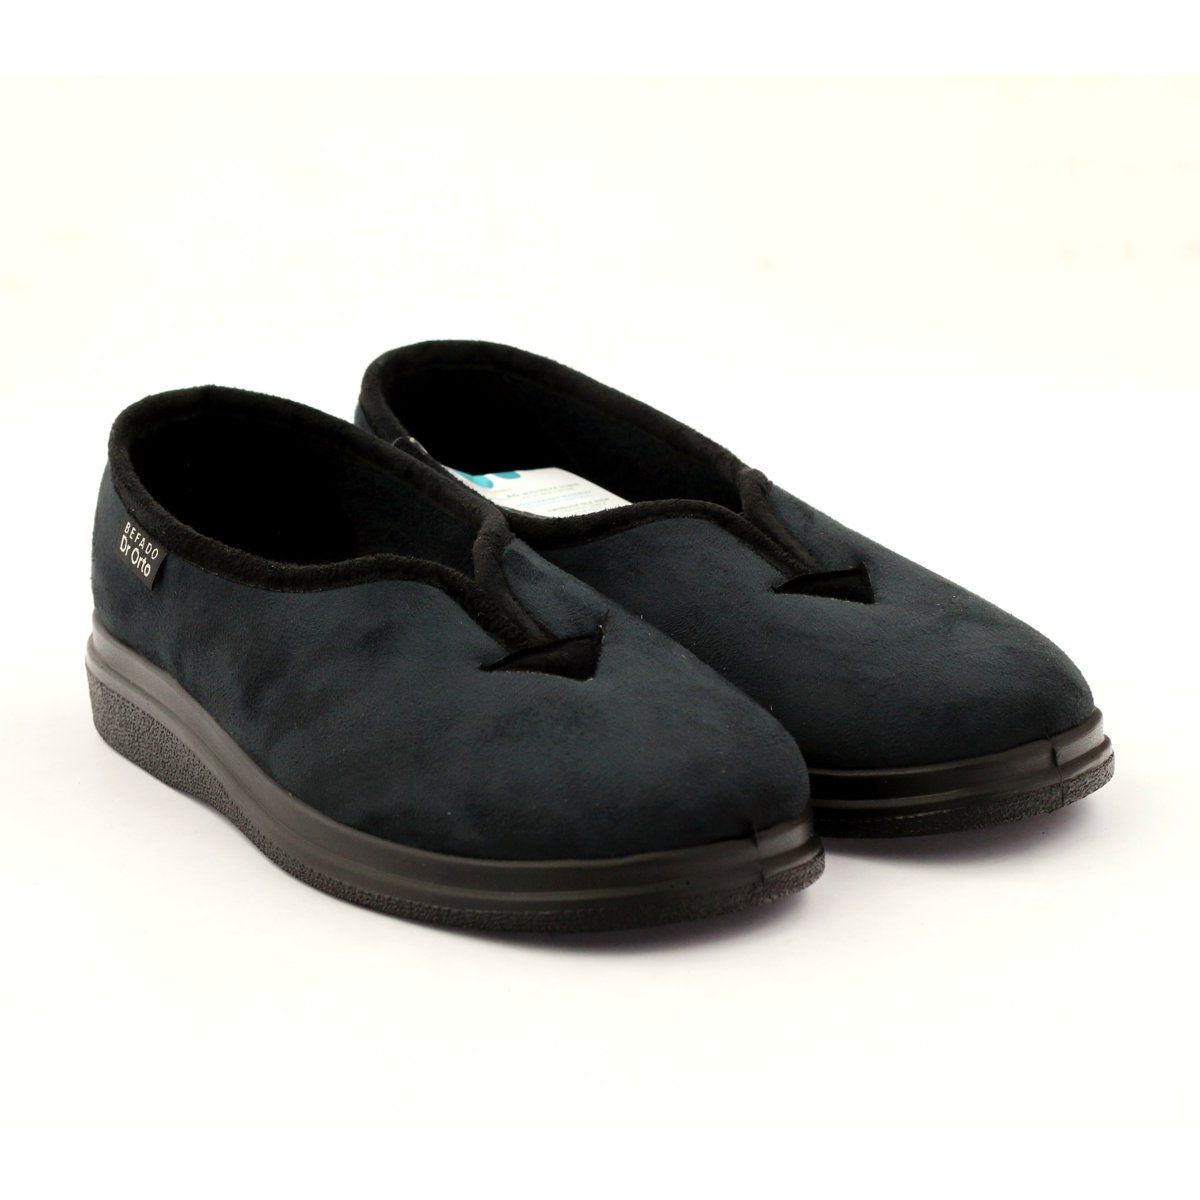 Befado Women S Shoes Moccasins Dr Orto Slippers Black Women Shoes Homemade Shoes Shoes